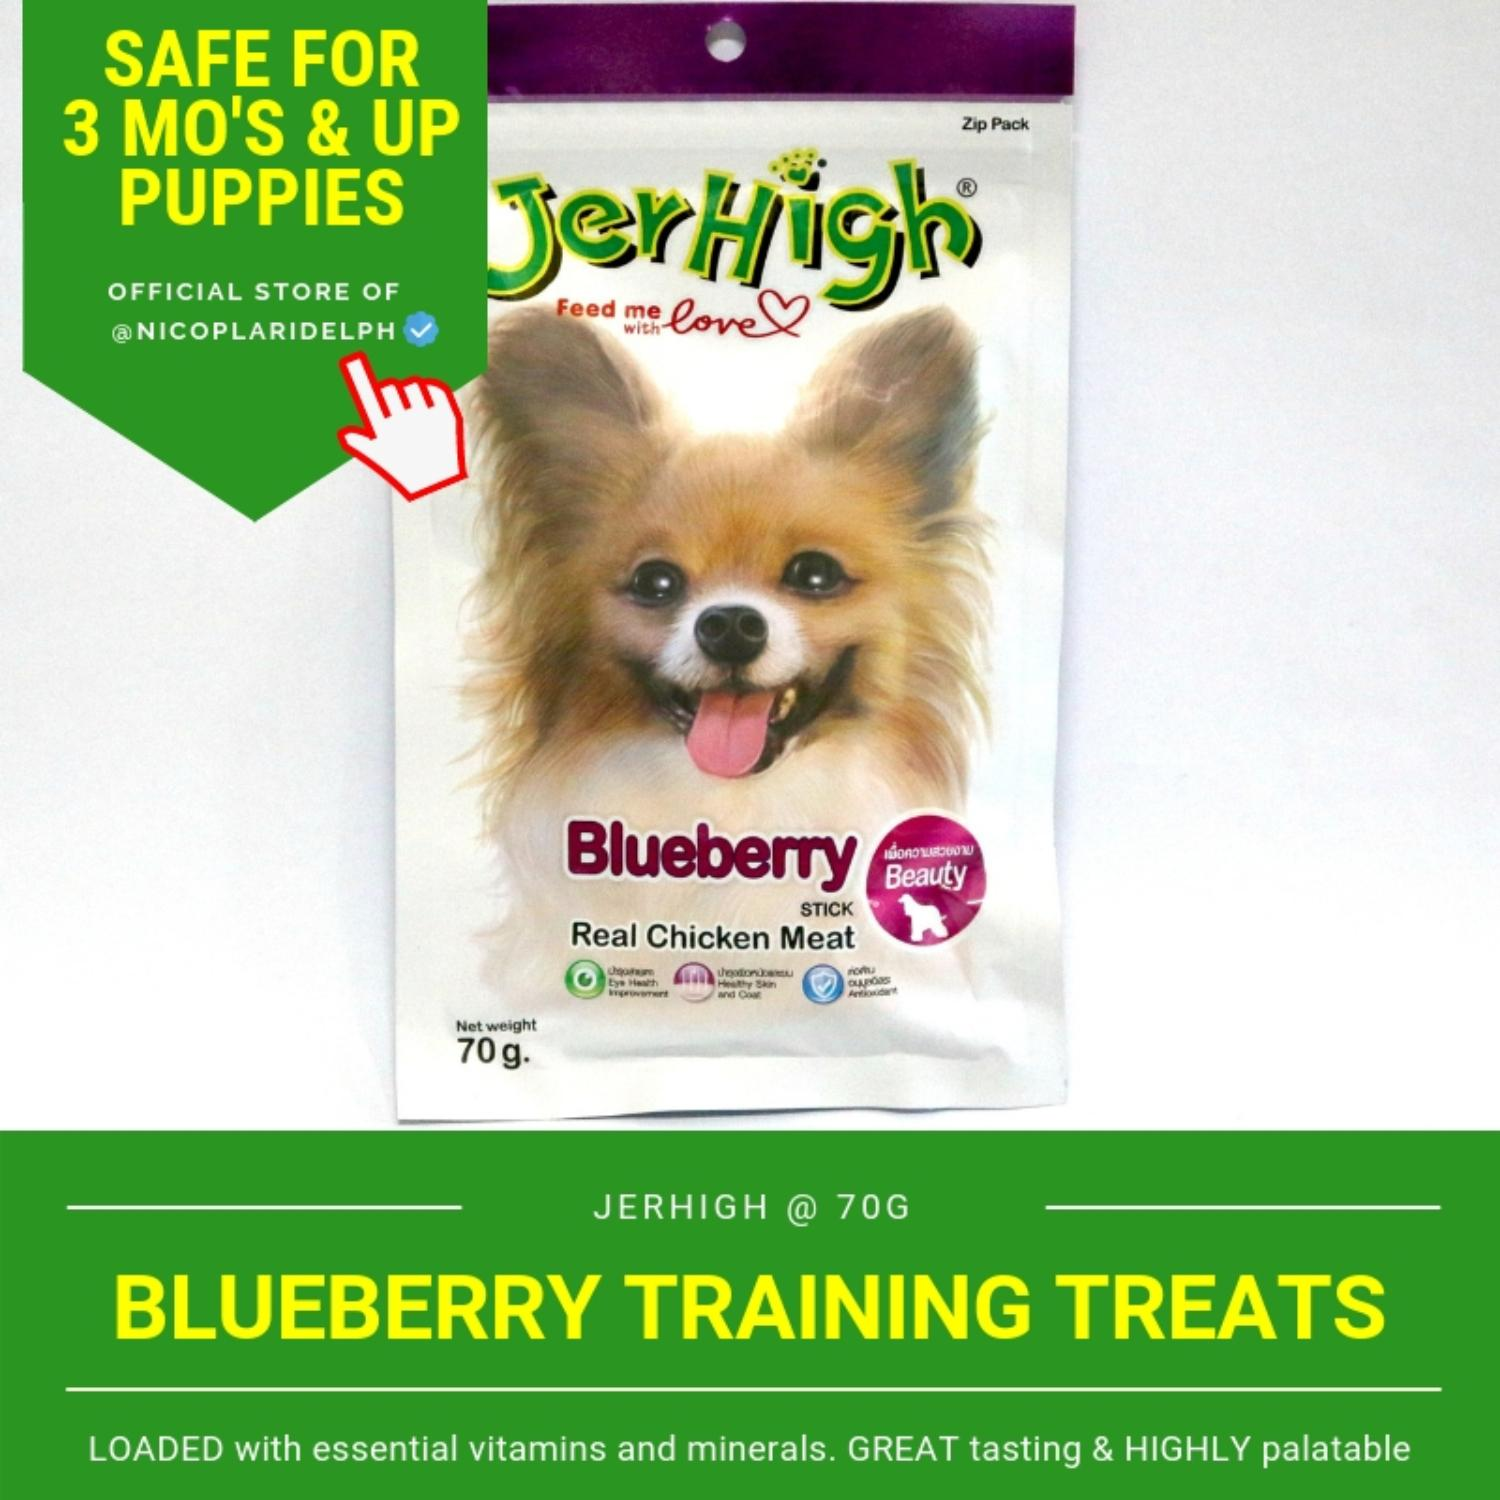 Jerhigh Blueberry Sticks With Real Chicken Meat For Puppies And Adult Dogs (70g) By Nicoplaridelph.